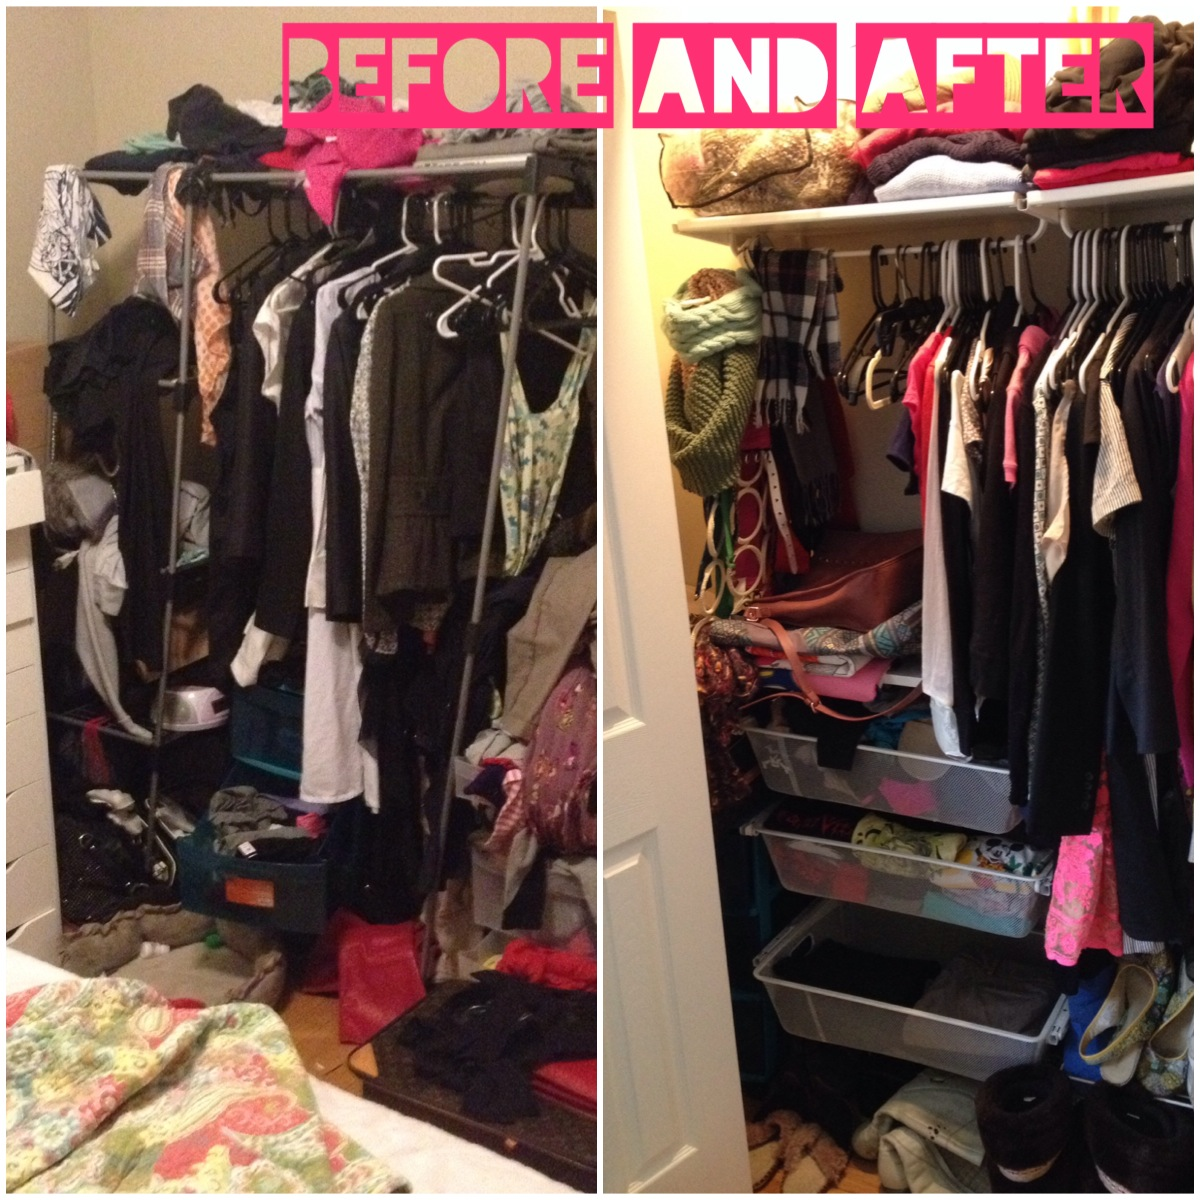 This Was The Clothing Storage Situation   Before The Lovely Leaning Tower  Of Clothes In The